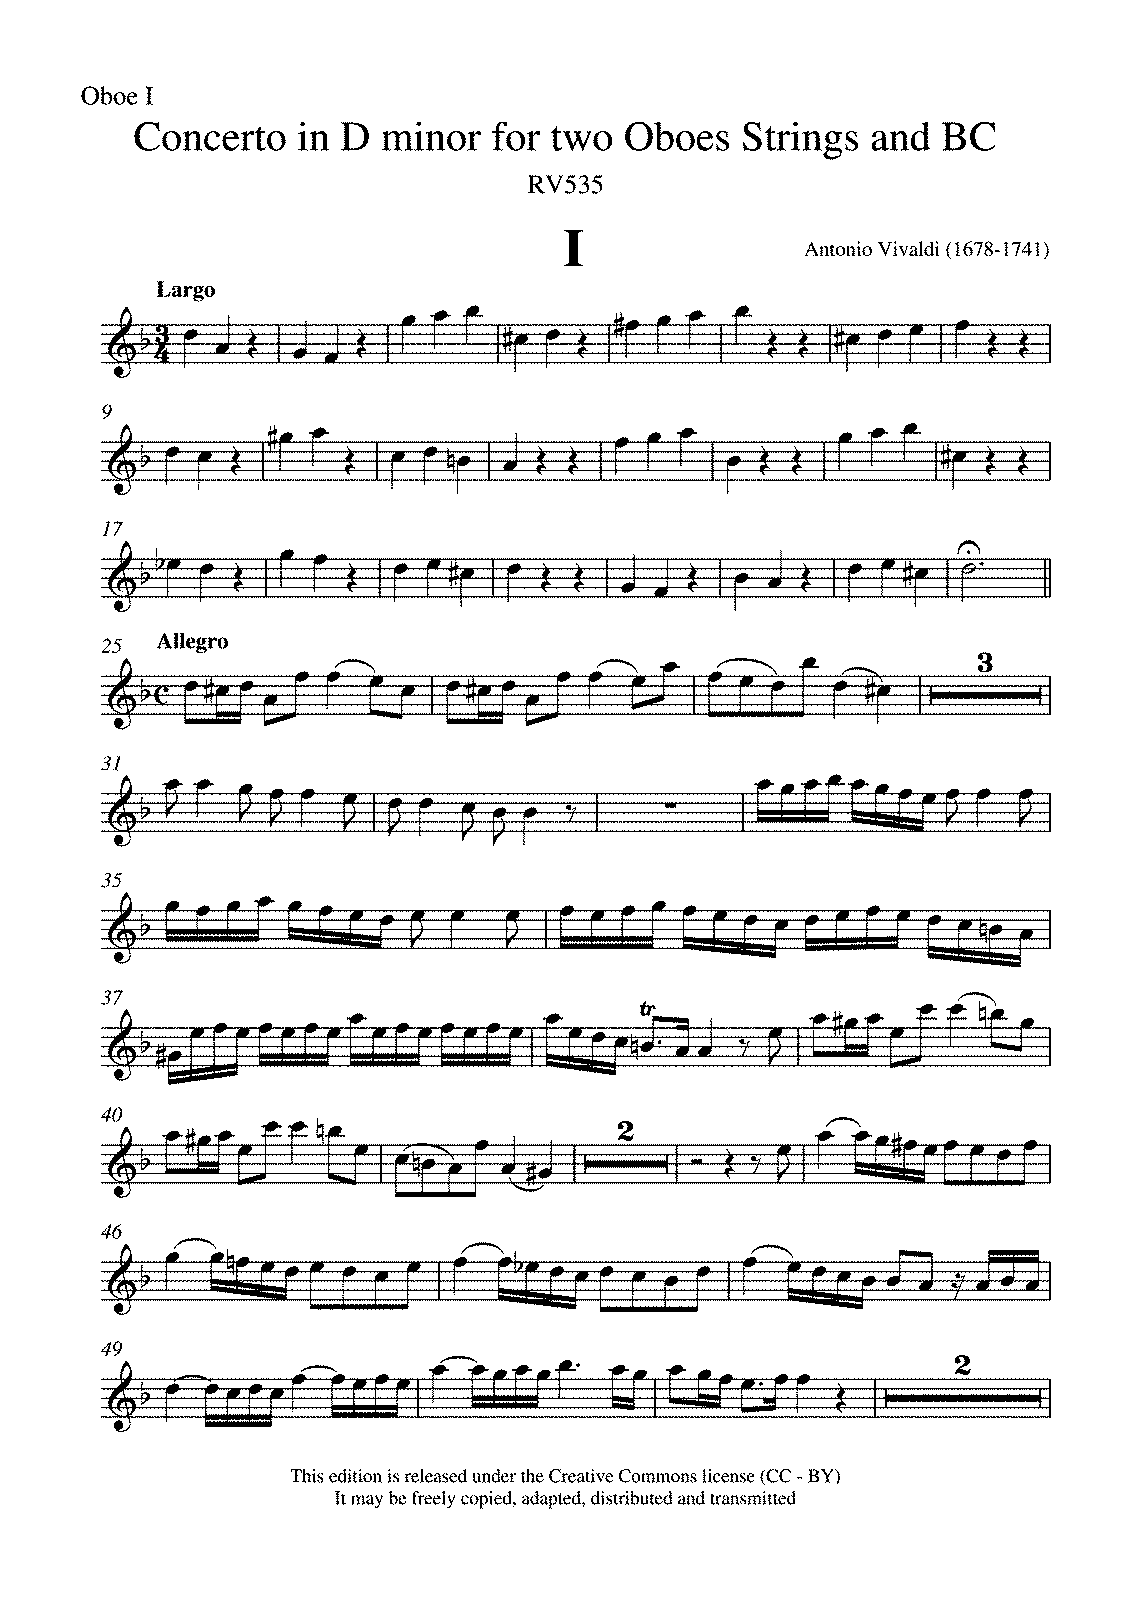 PMLP59201-Vivaldi Concerto.in.D.minor.RB535.for.2.Oboes.Strings.and.BC.Van Wassenaerconsort Original Hb1.pdf